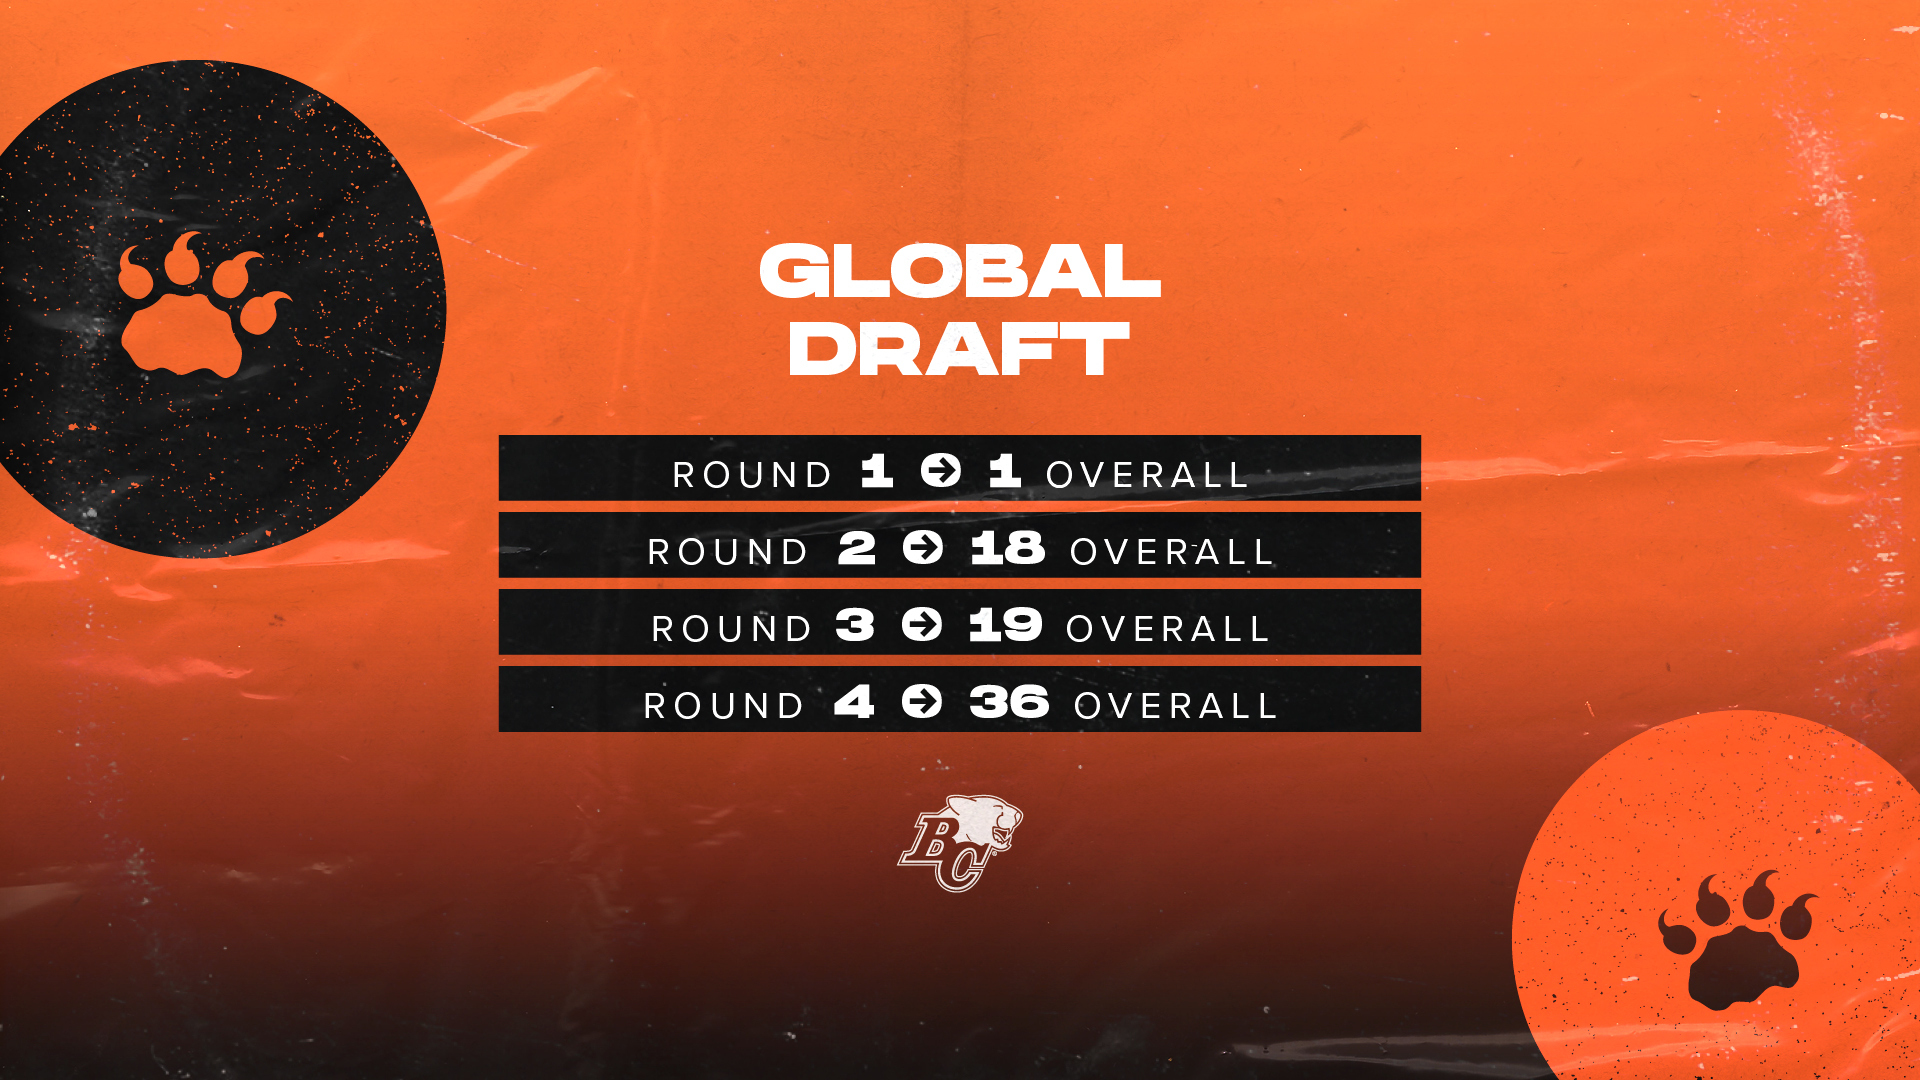 Scouting Season heats up. Head coach Rick Campbell joins 1st and Now to preview the Global Draft, optimism for 2021 and more.